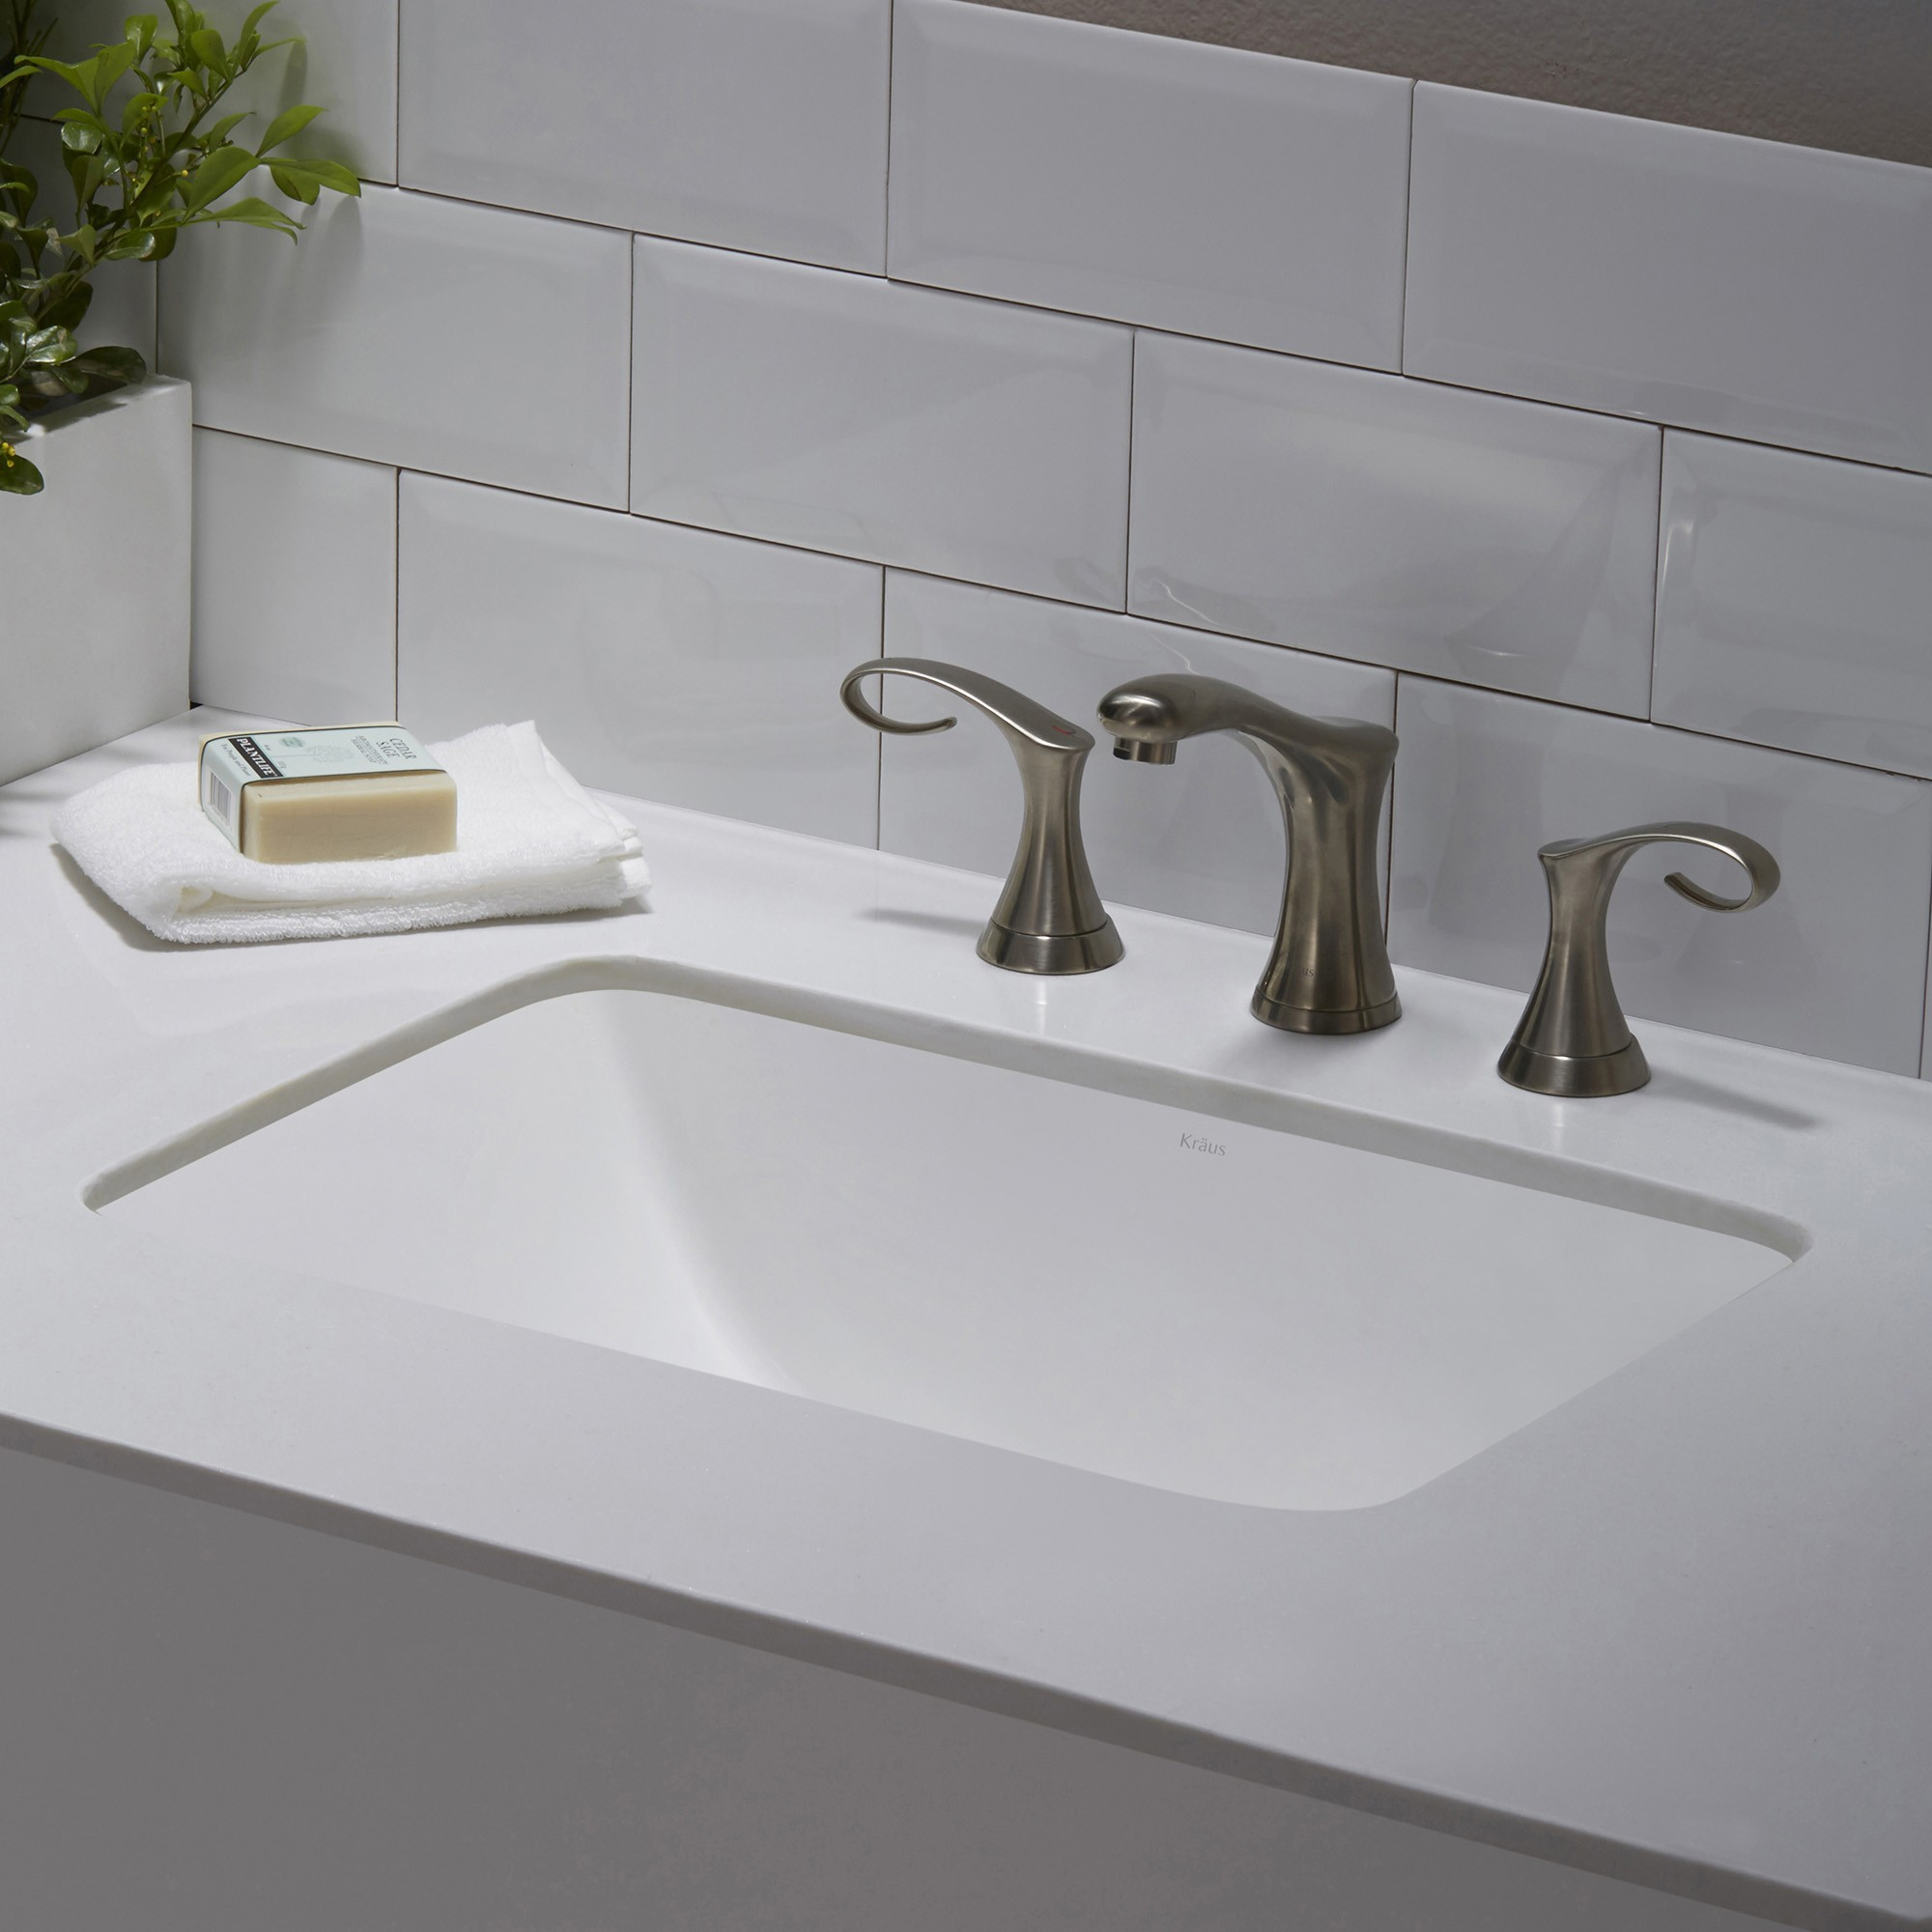 small rectangular undermount bathroom sink full size of bathroom sink:elavo small ceramic rectangular undermount NAFMYCX